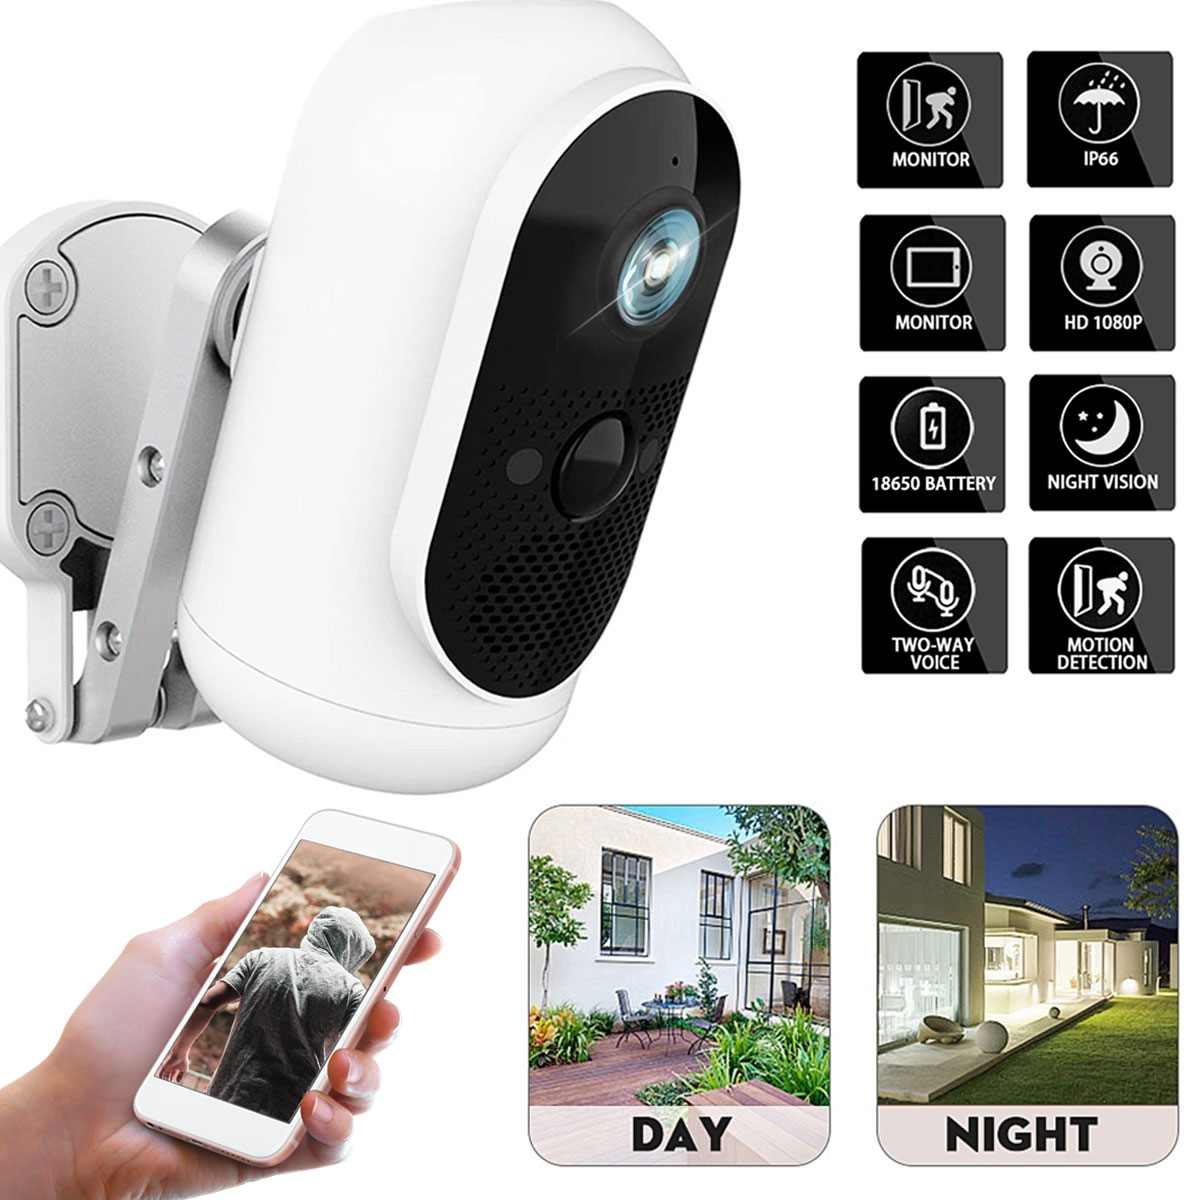 100% Wire-free Home Security 1080P HD Mini IP Camera WiFi Wireless Night Vision Camera 6000mA Battery PIR Camera IP